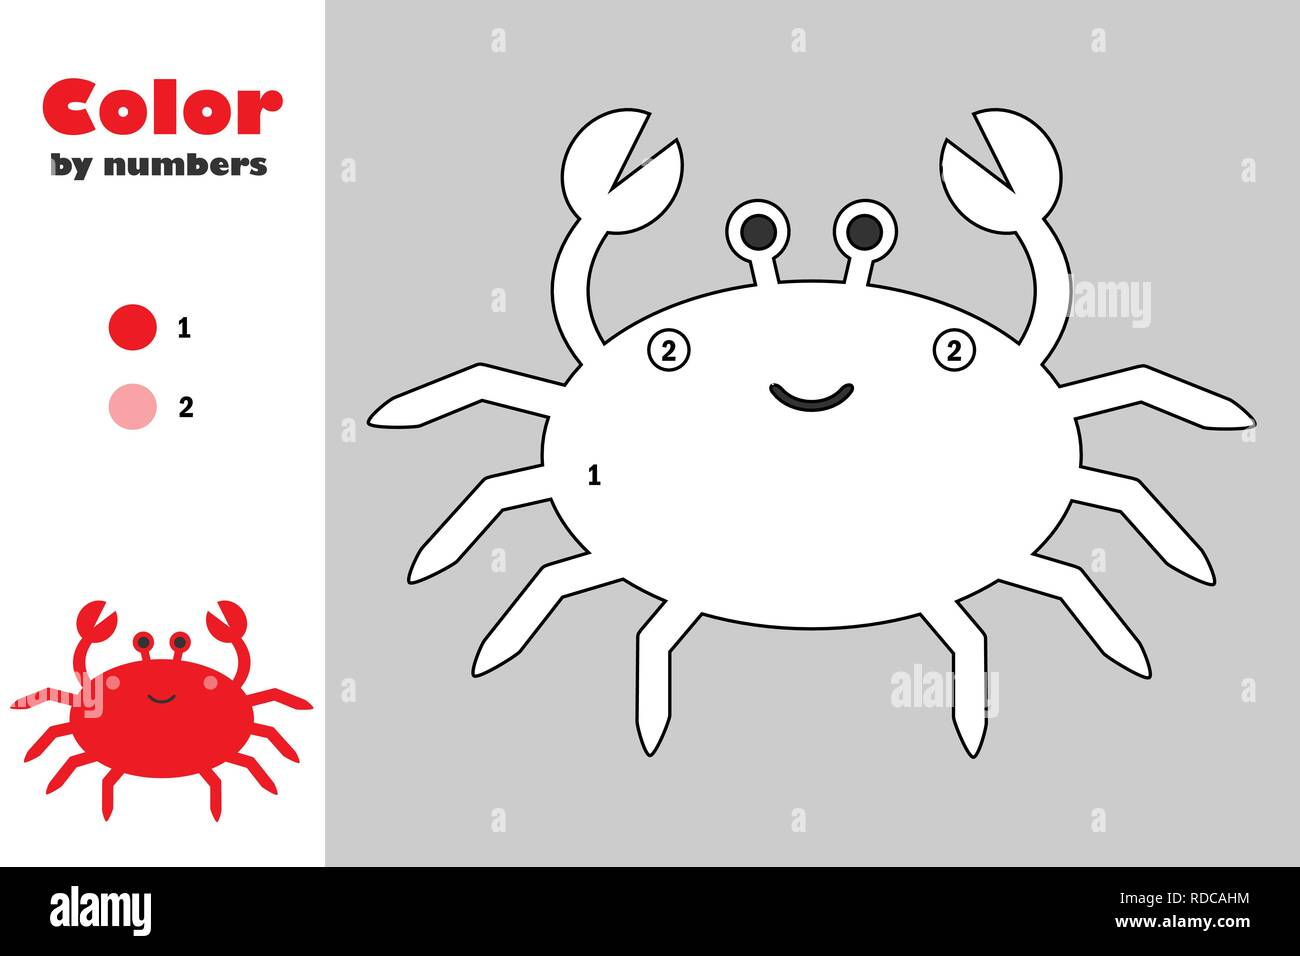 photograph regarding Crab Printable named Crab inside of cartoon style and design, colour via quantity, education and learning paper activity